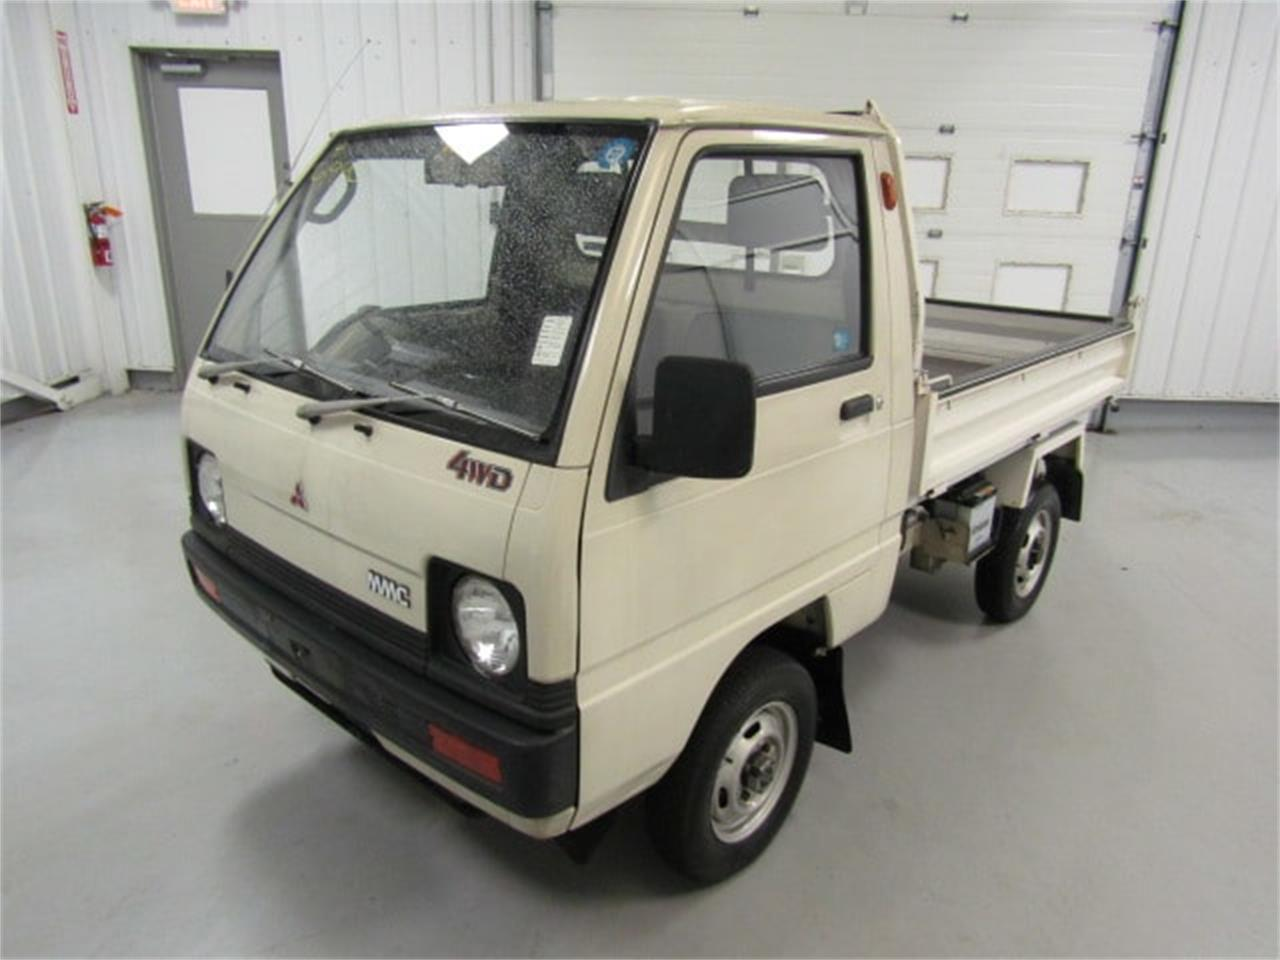 Large Picture of '88 Mitsubishi MiniCab located in Virginia - $7,990.00 Offered by Duncan Imports & Classic Cars - LN50